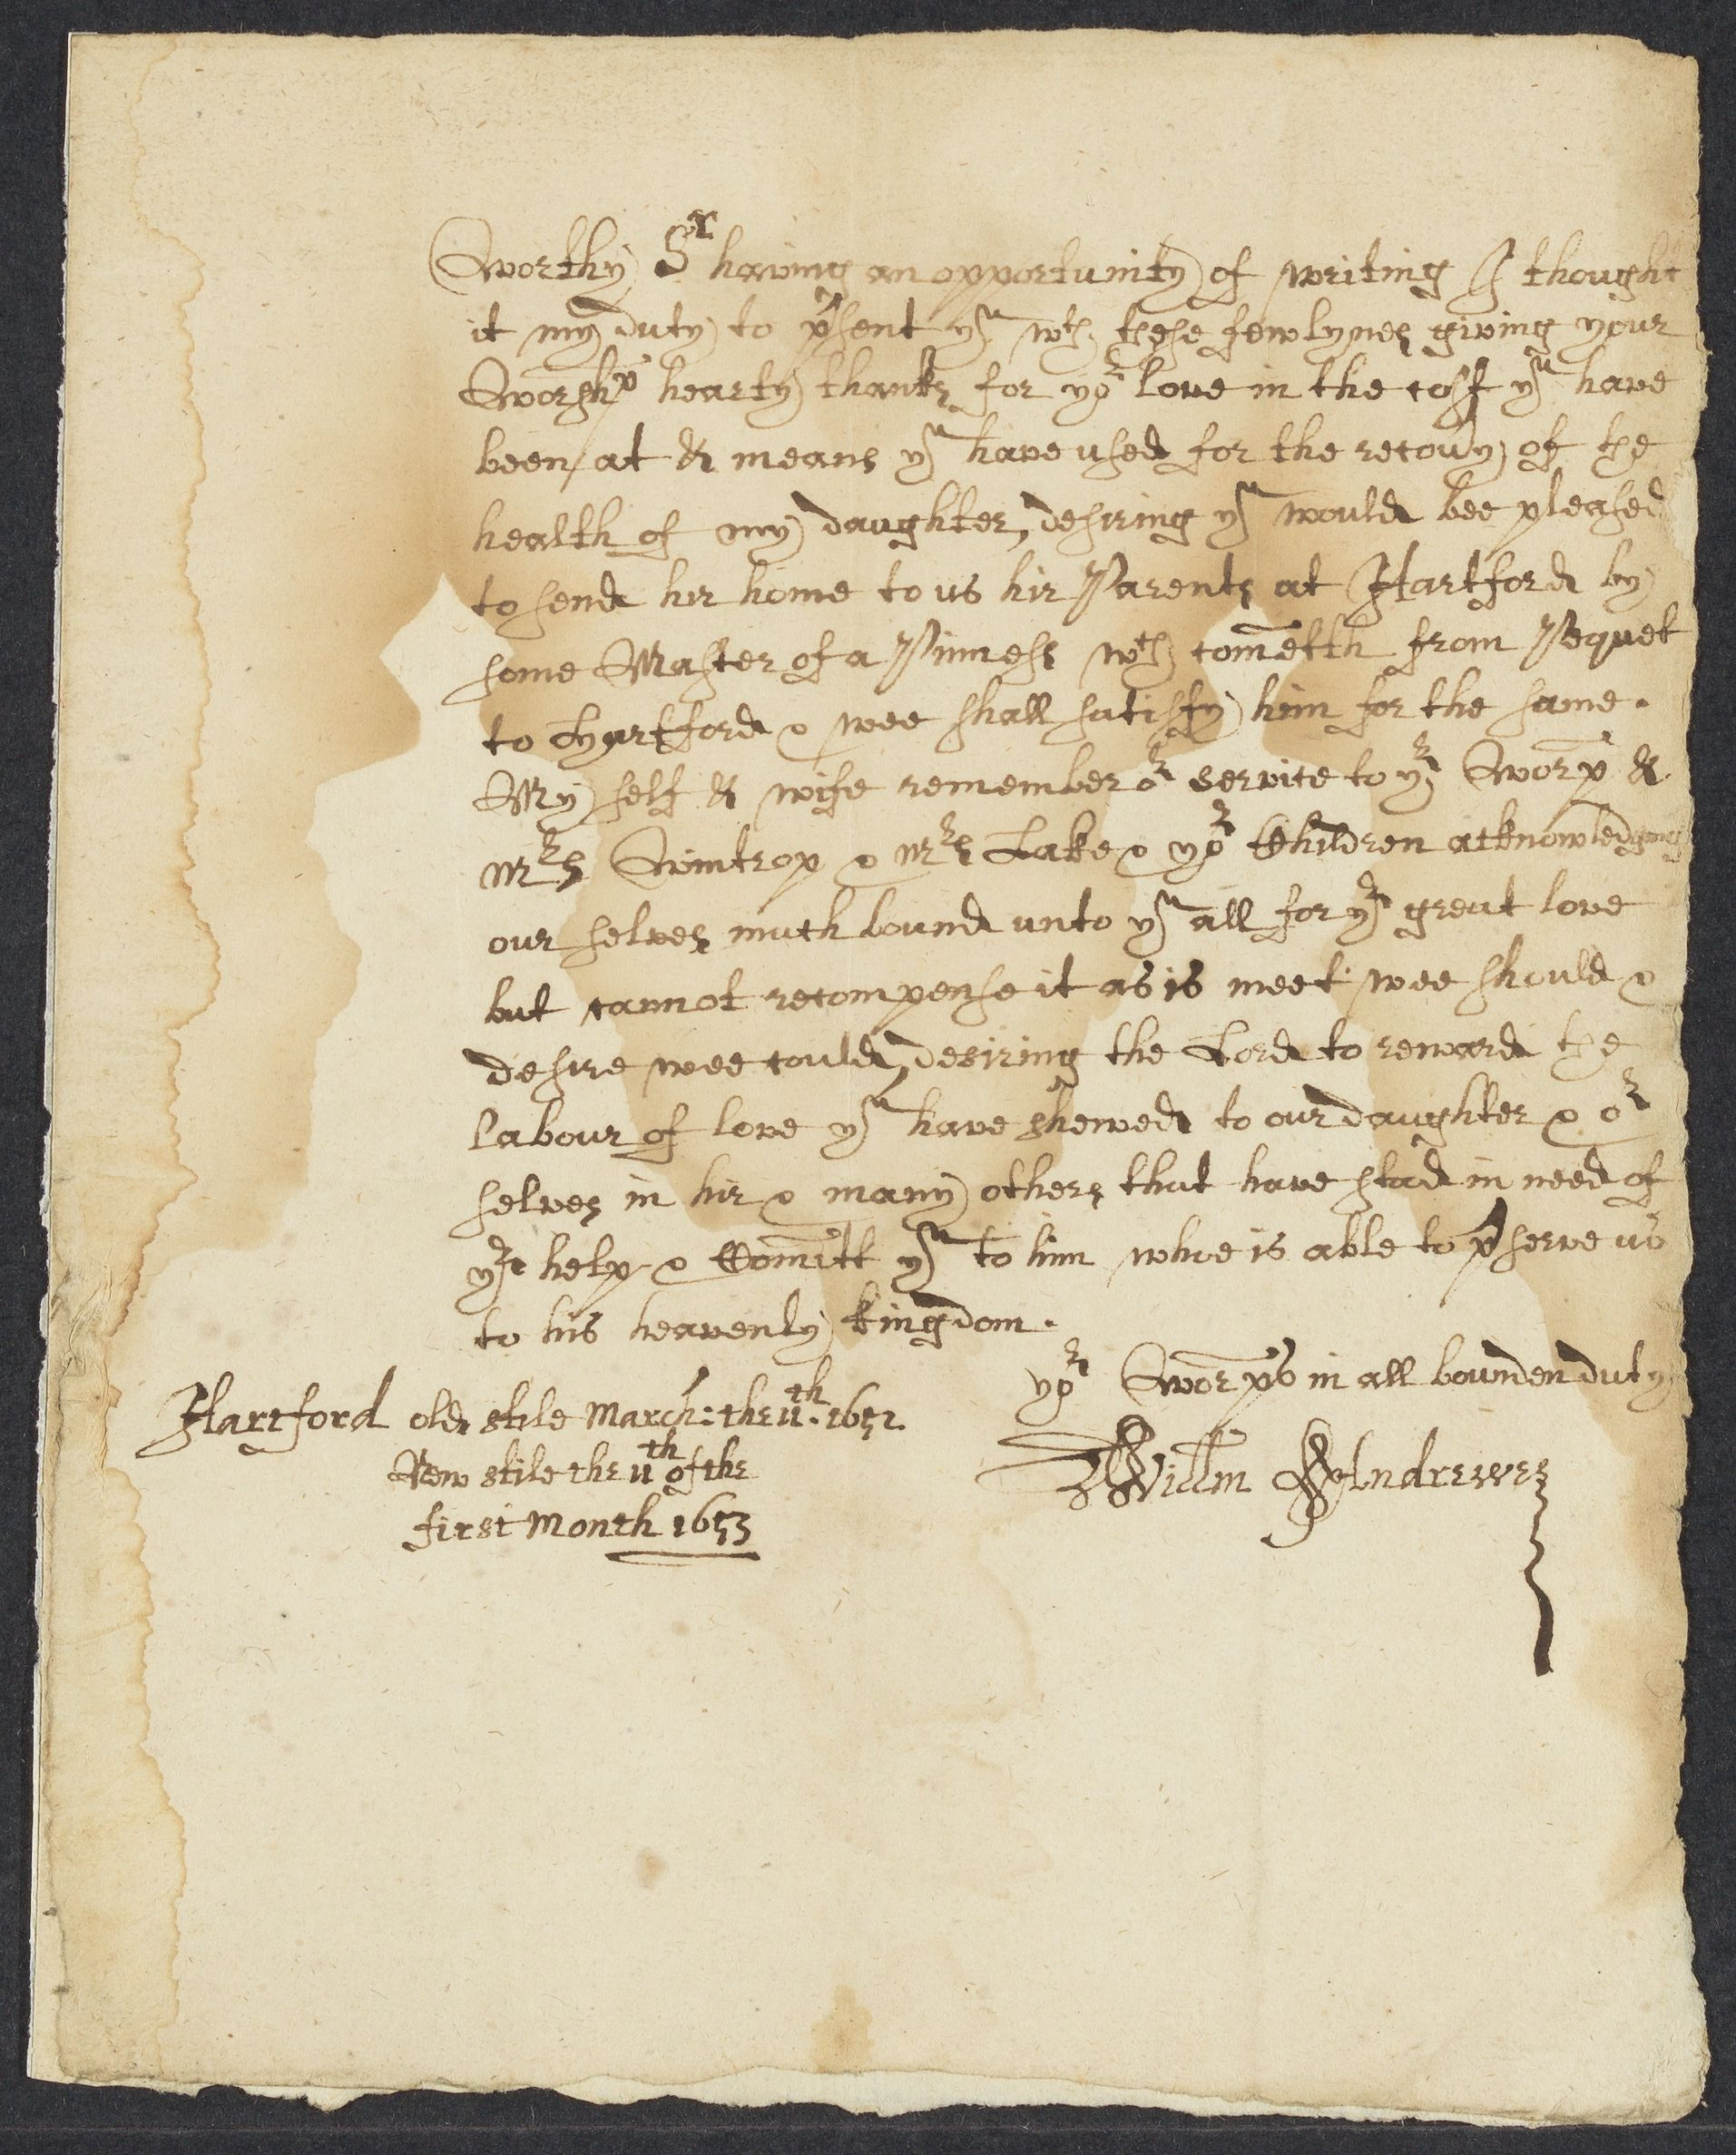 Andrewes, William, 2 autographed letters signed to John Winthrop; Hartford, 1653 January 11-May 9